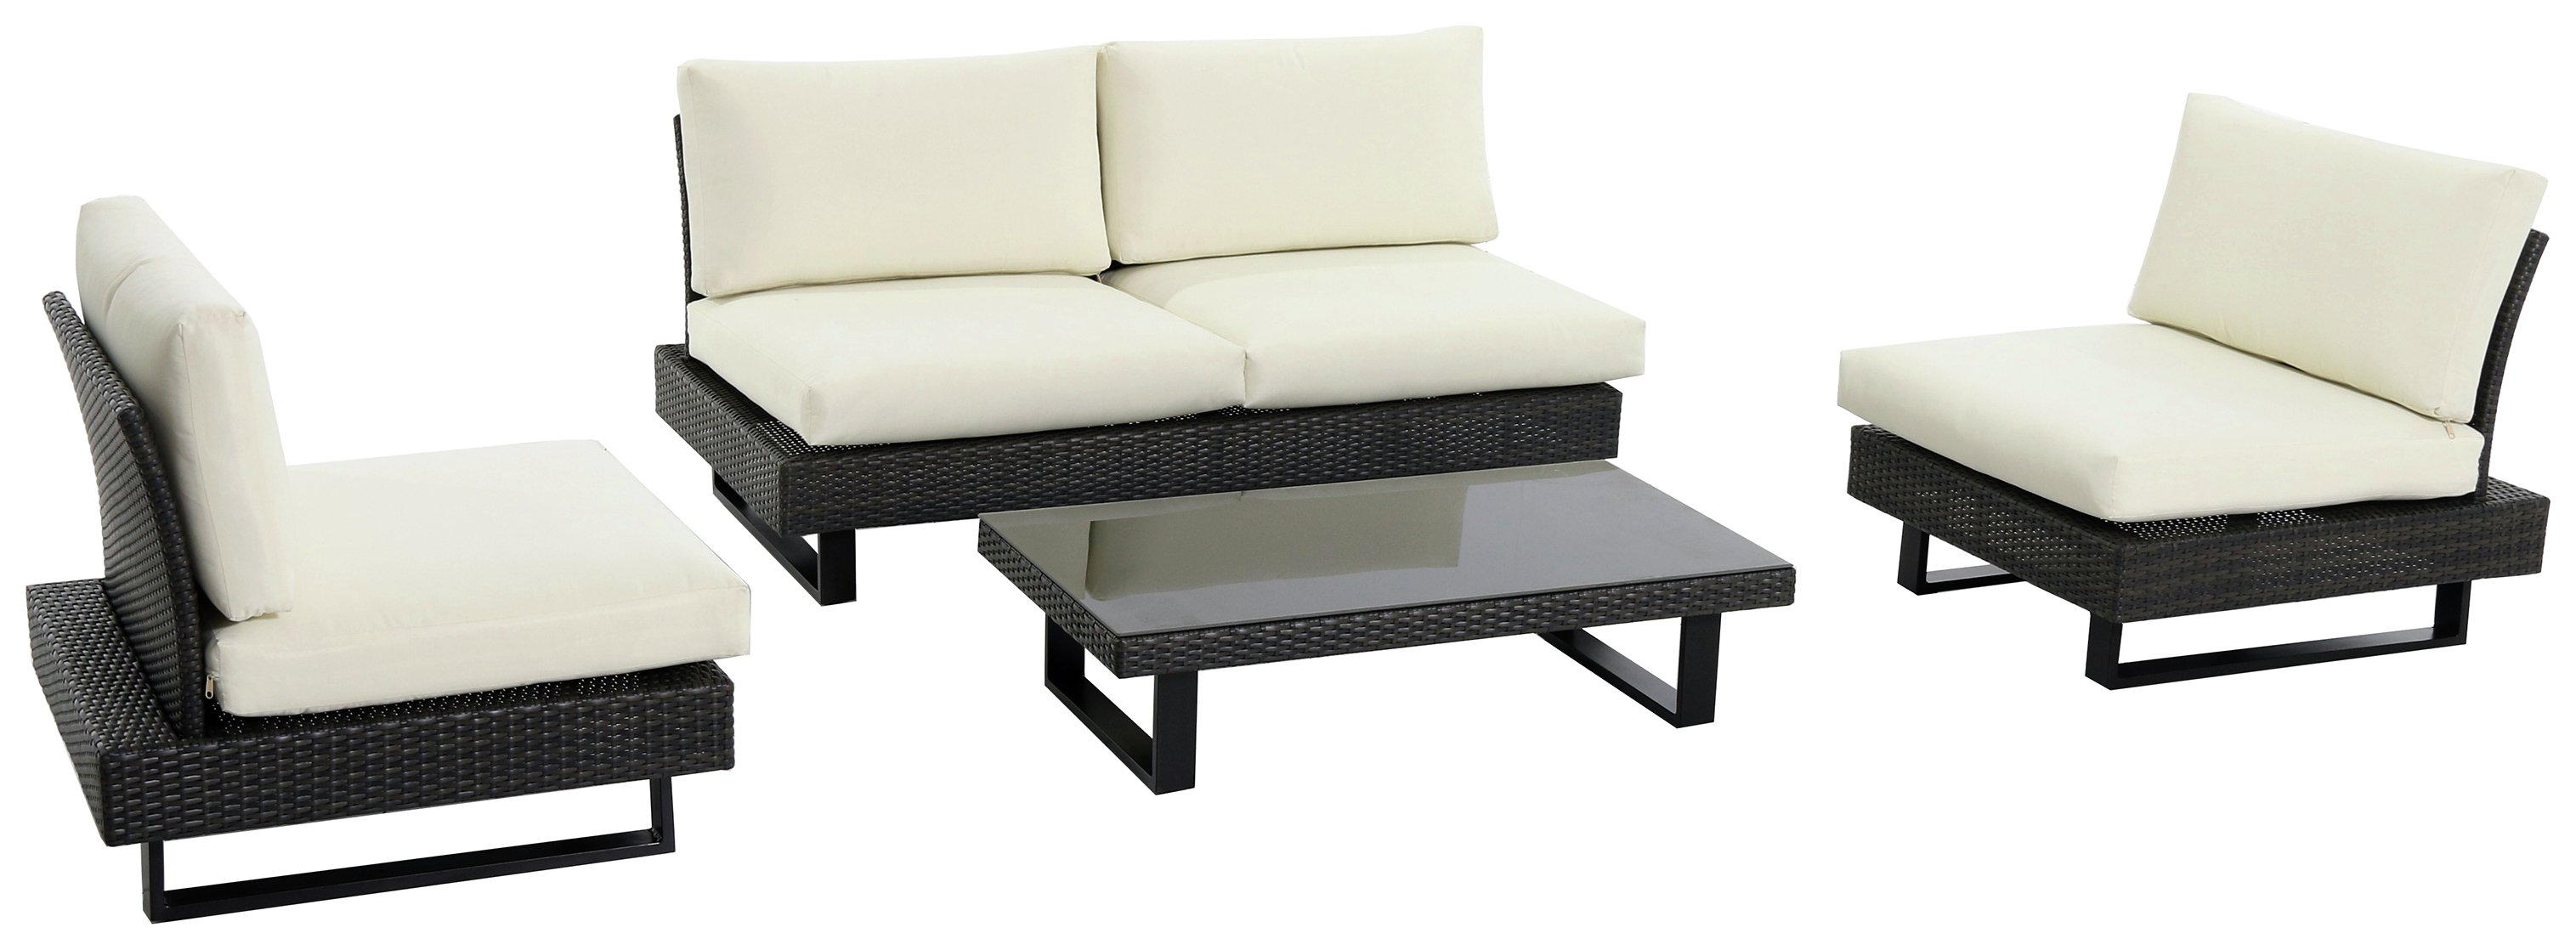 Low Level Modern Rattan - 4 Seater - Garden Sofa Set lowest price